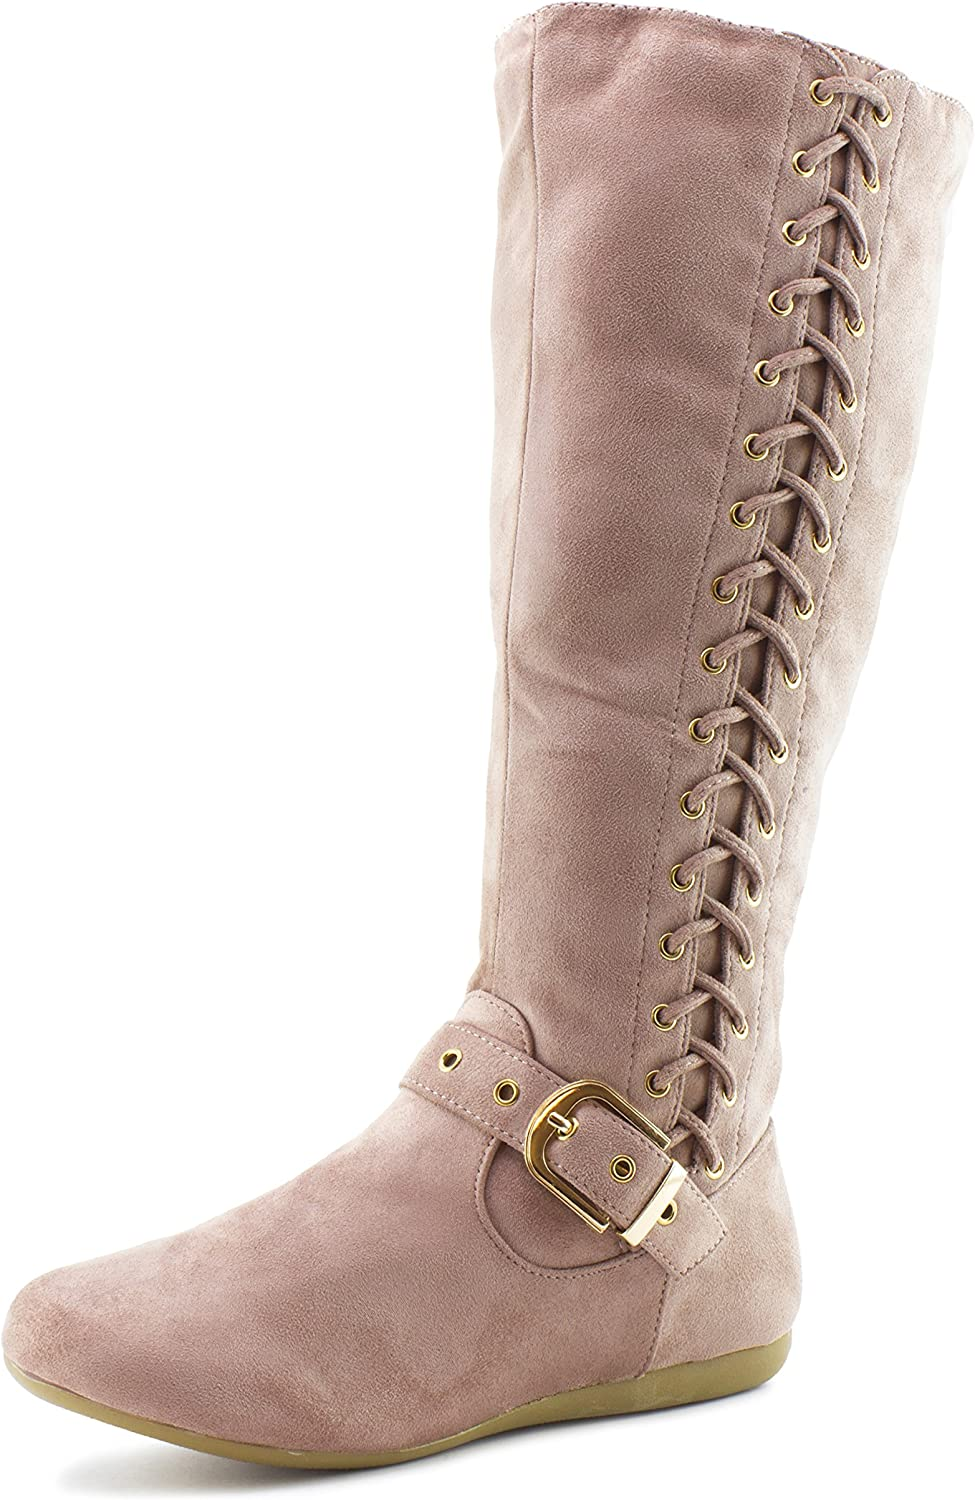 Link Mid Calf Side Zipper & String Faux Suede Flat Heel Boots (Adults)